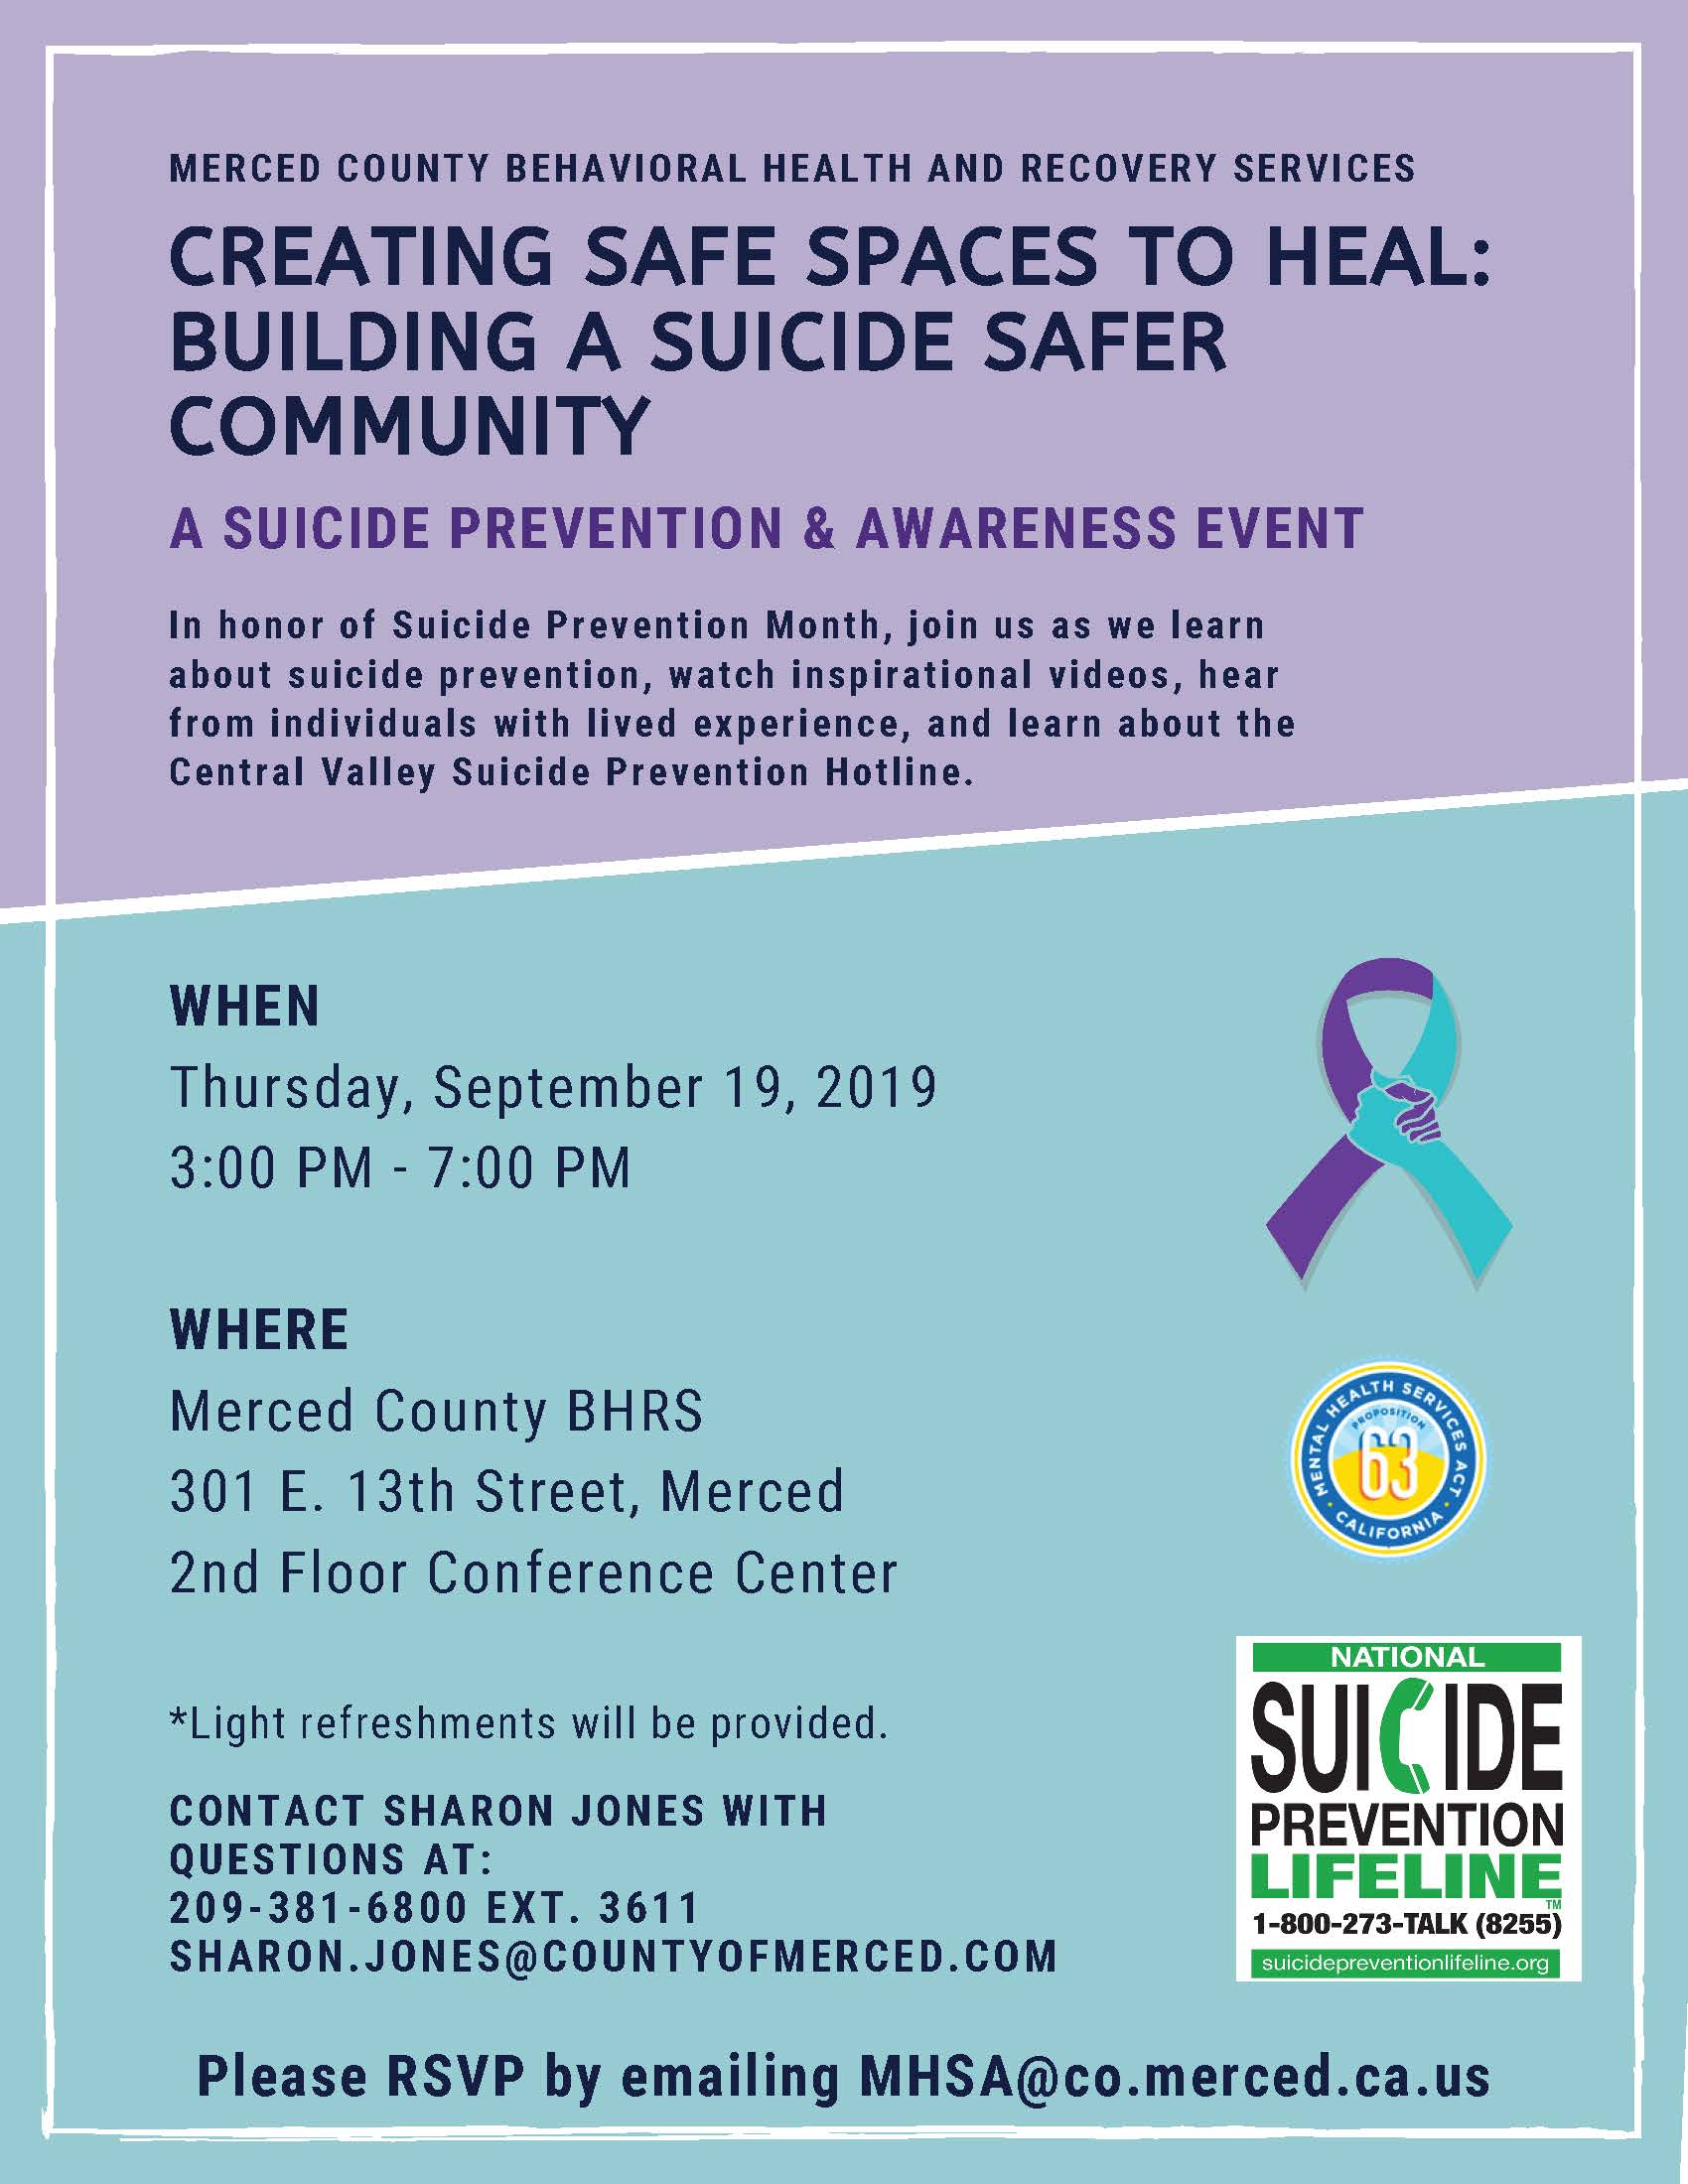 Flyer for Suicide Prevention Month Event on 9-19-19